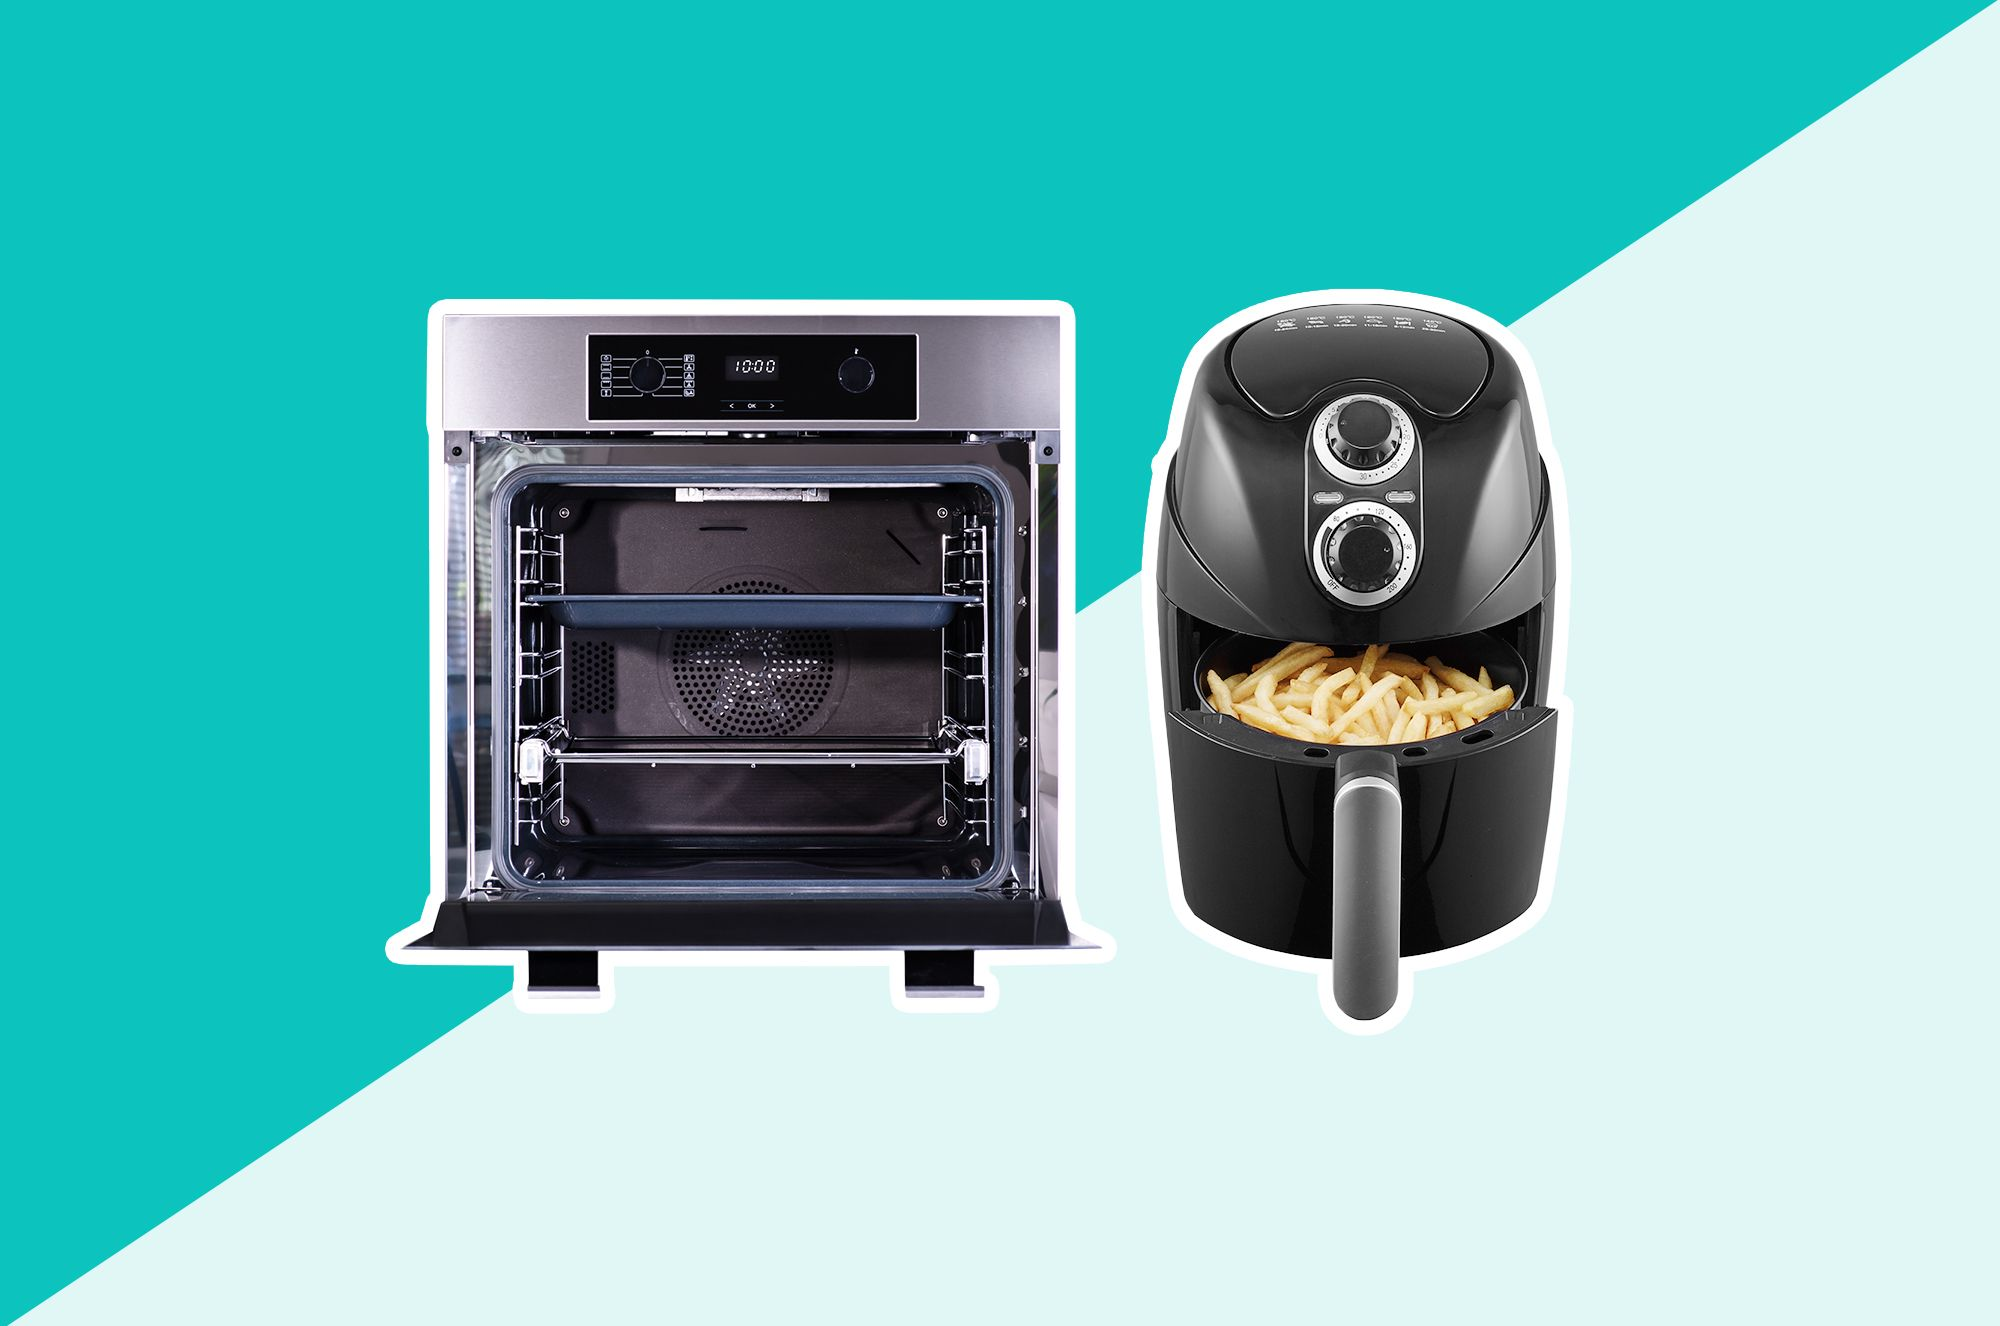 Air Fryer Vs Convection Oven The Difference Between Air Fryers And Convection Ovens